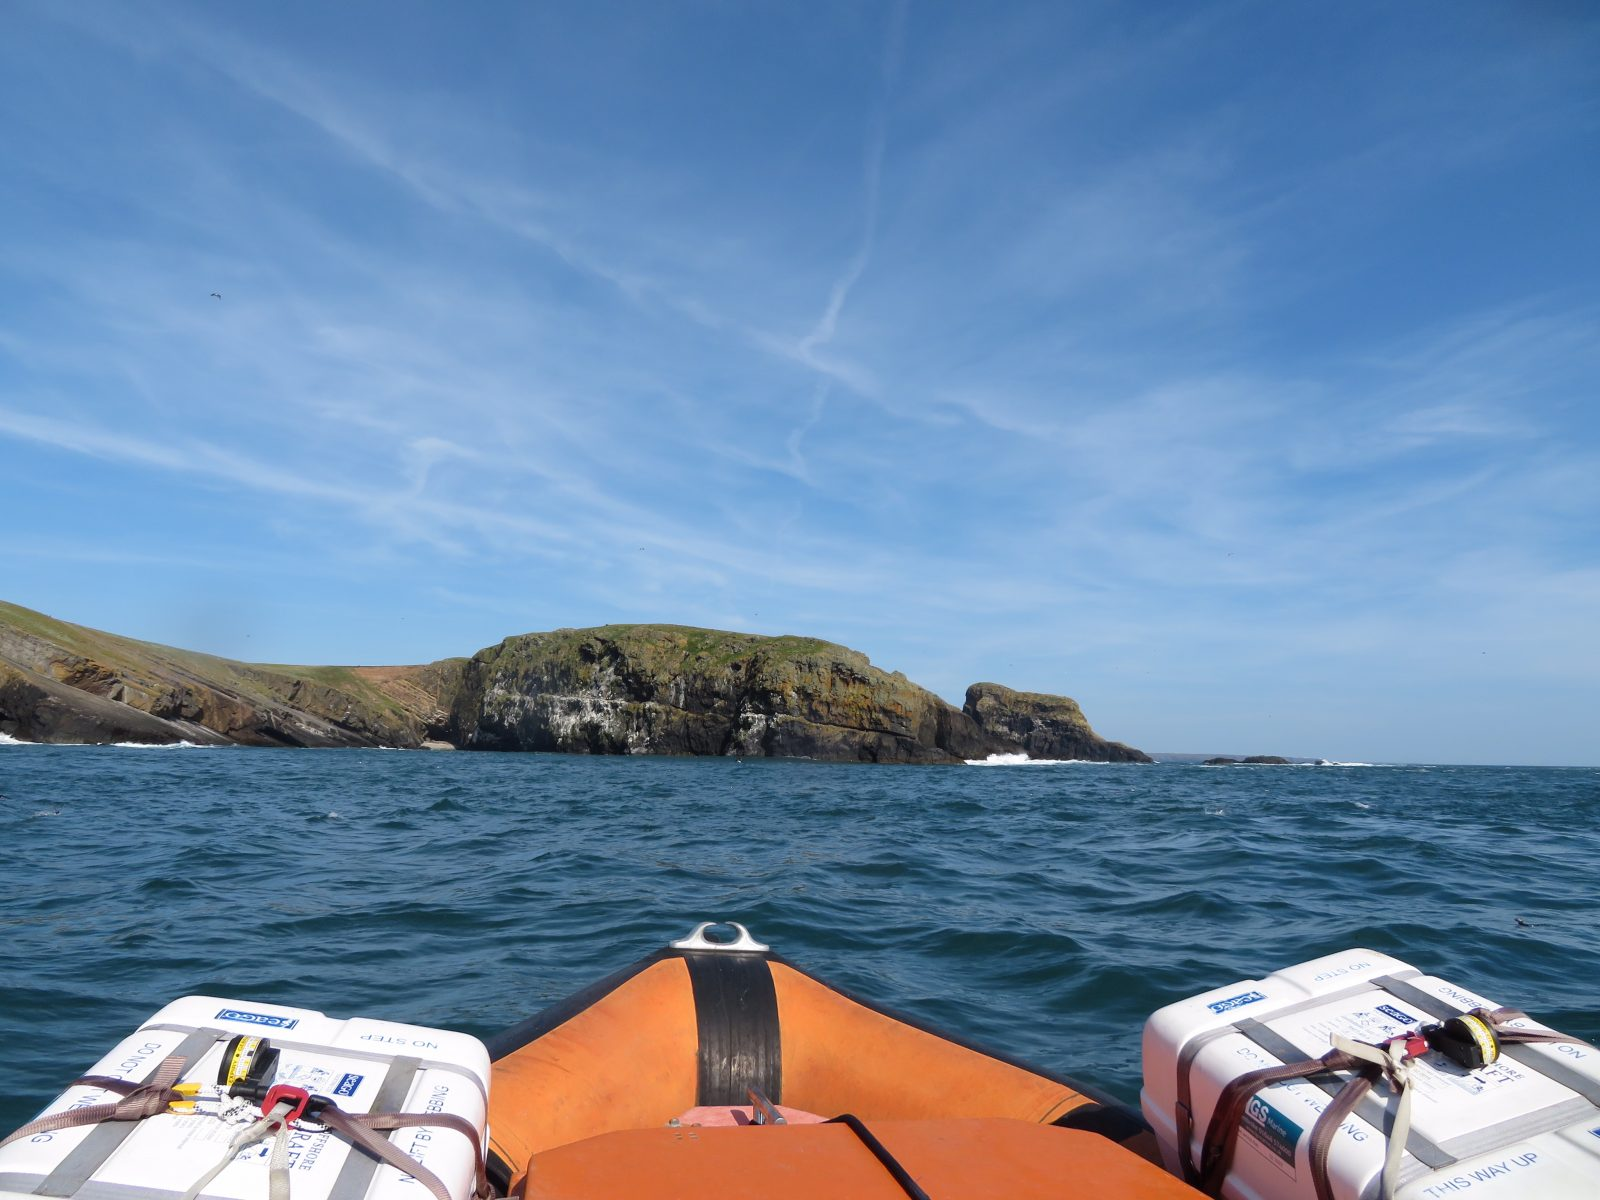 Skomer and Skokholm from the sea